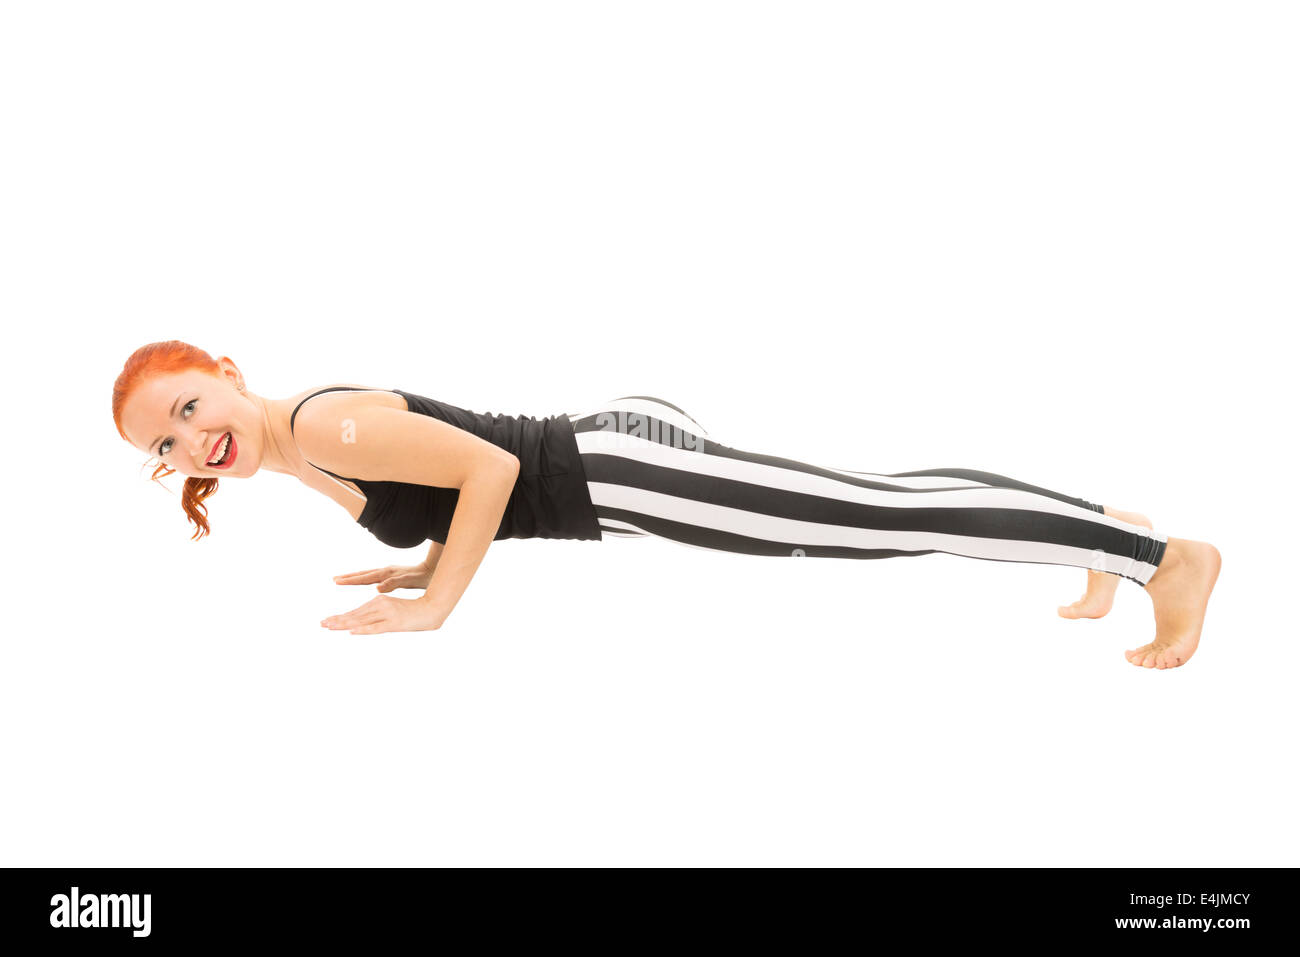 Young Girl Demonstrating Advanced Yoga Pose Full Body View On White Background